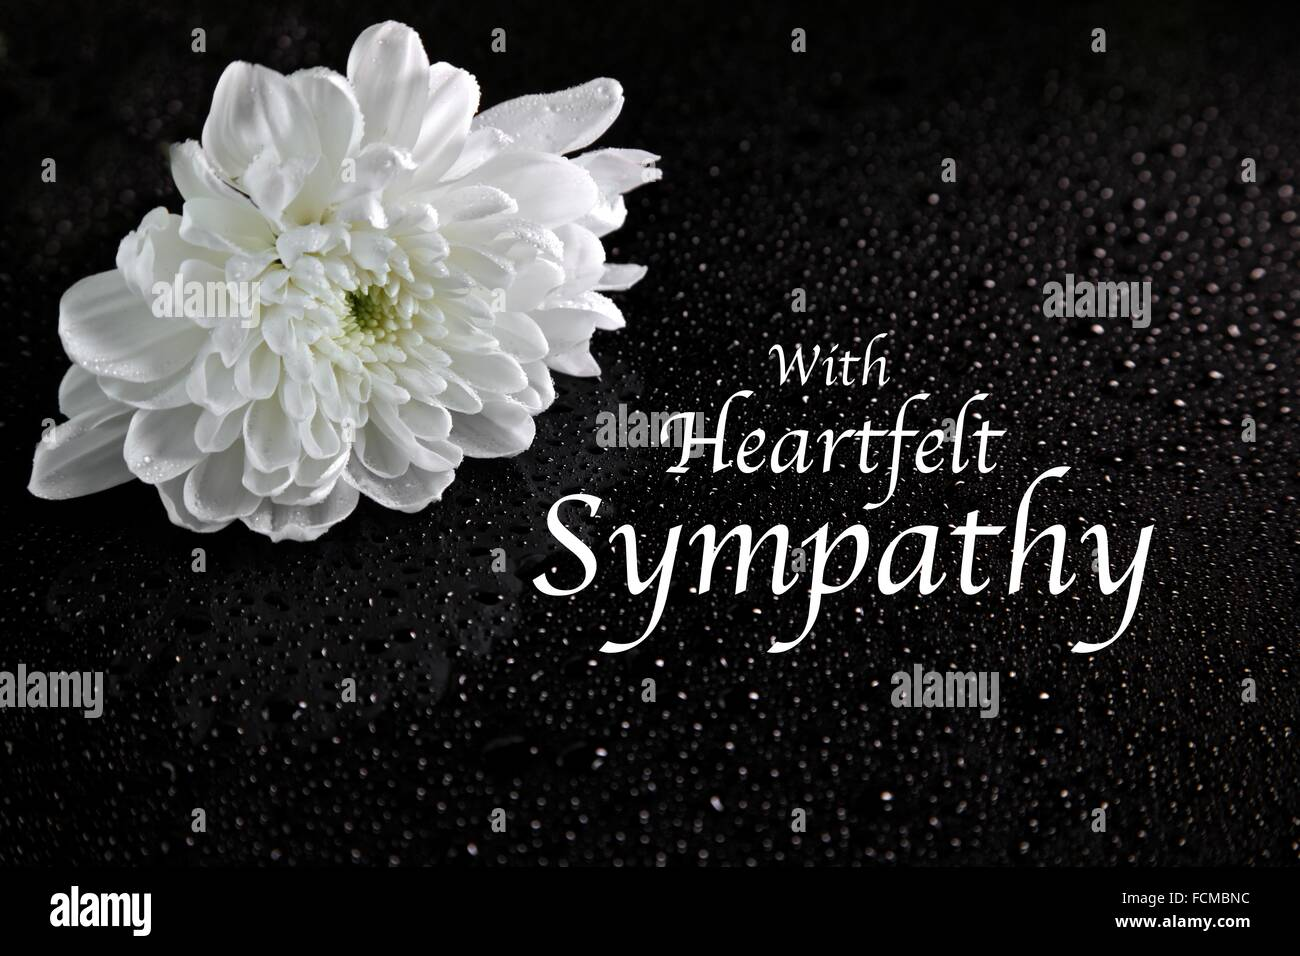 A white Chrysanthemum with sympathy message Photo Royalty – Sympathy Message